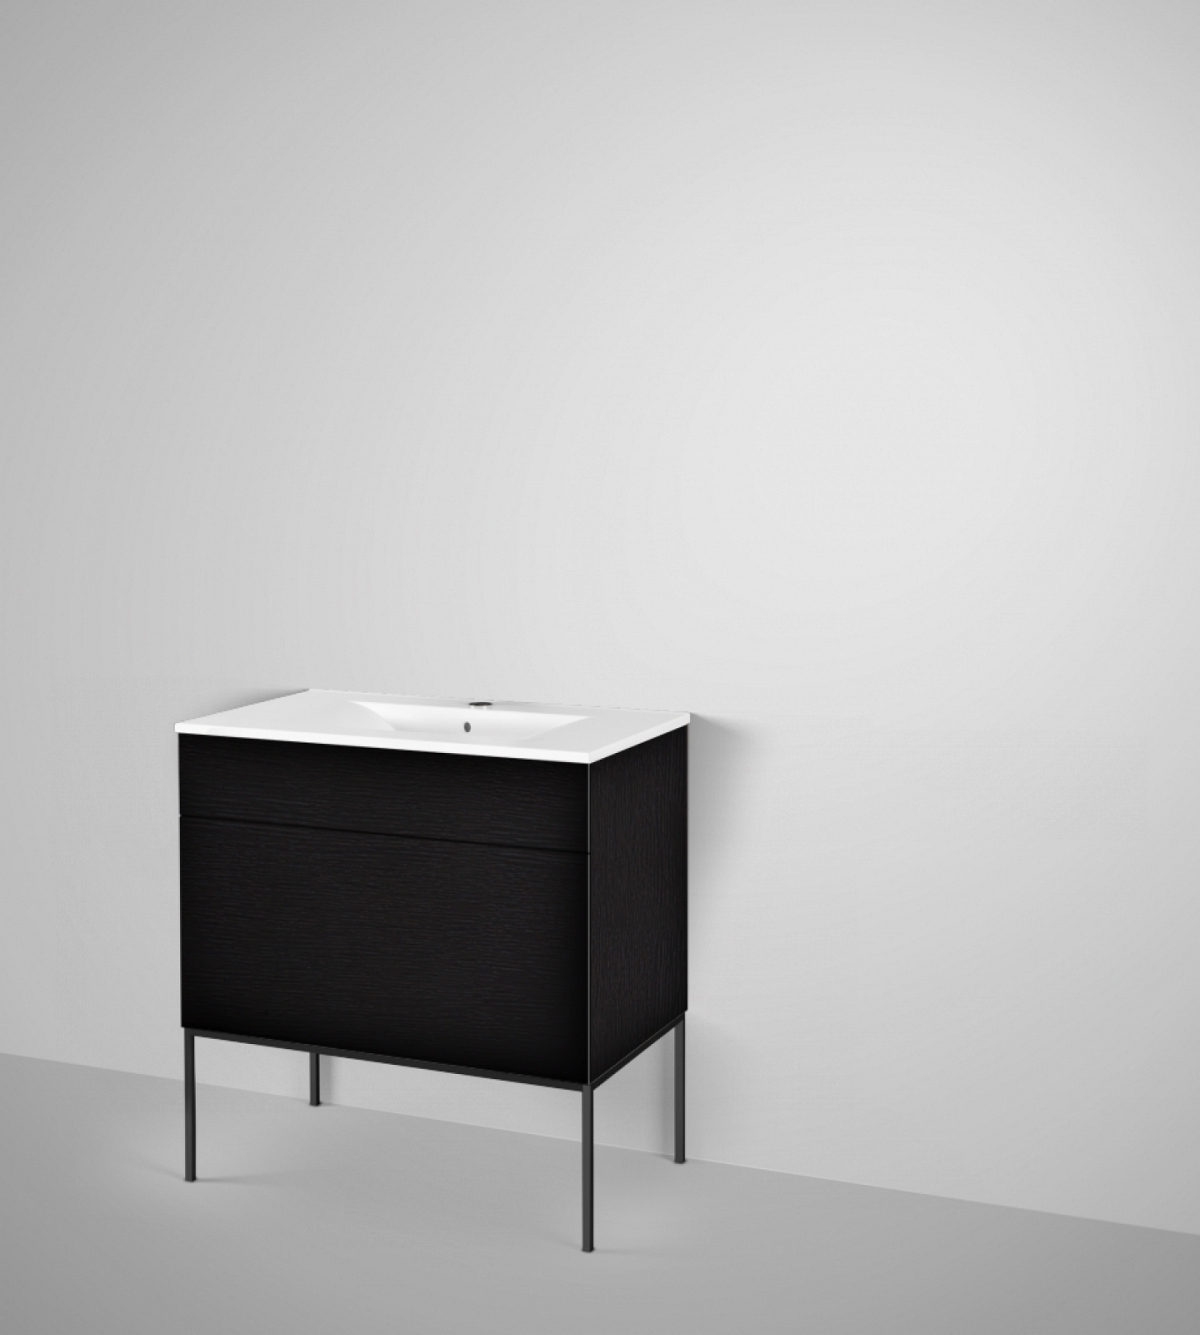 1438-swoon-side-black-bathroom-furniture.png